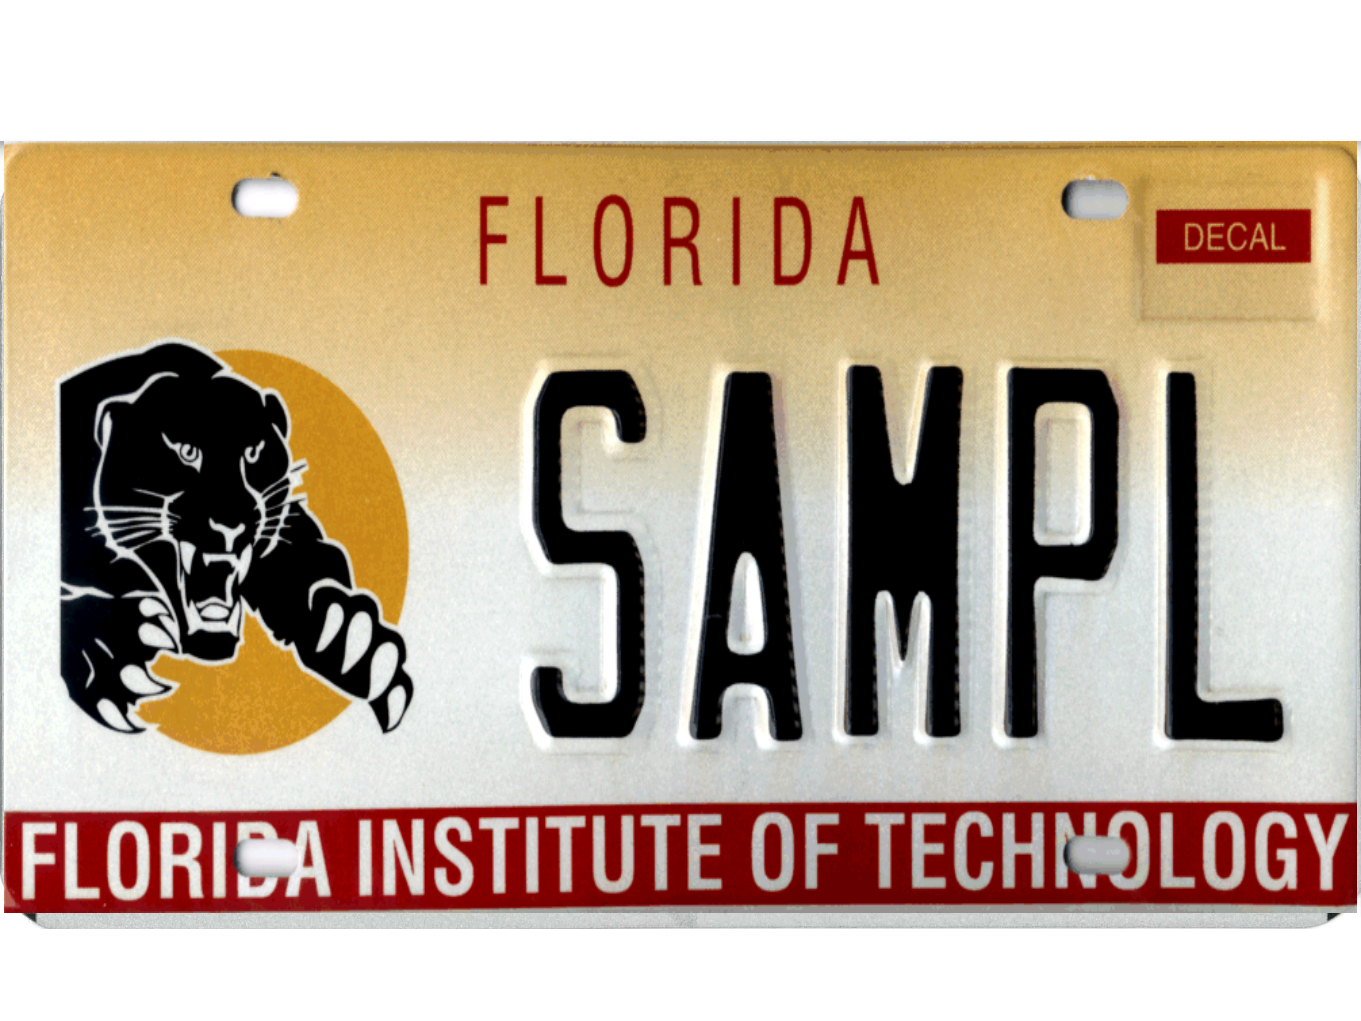 The Florida Institute of Technology license plate.